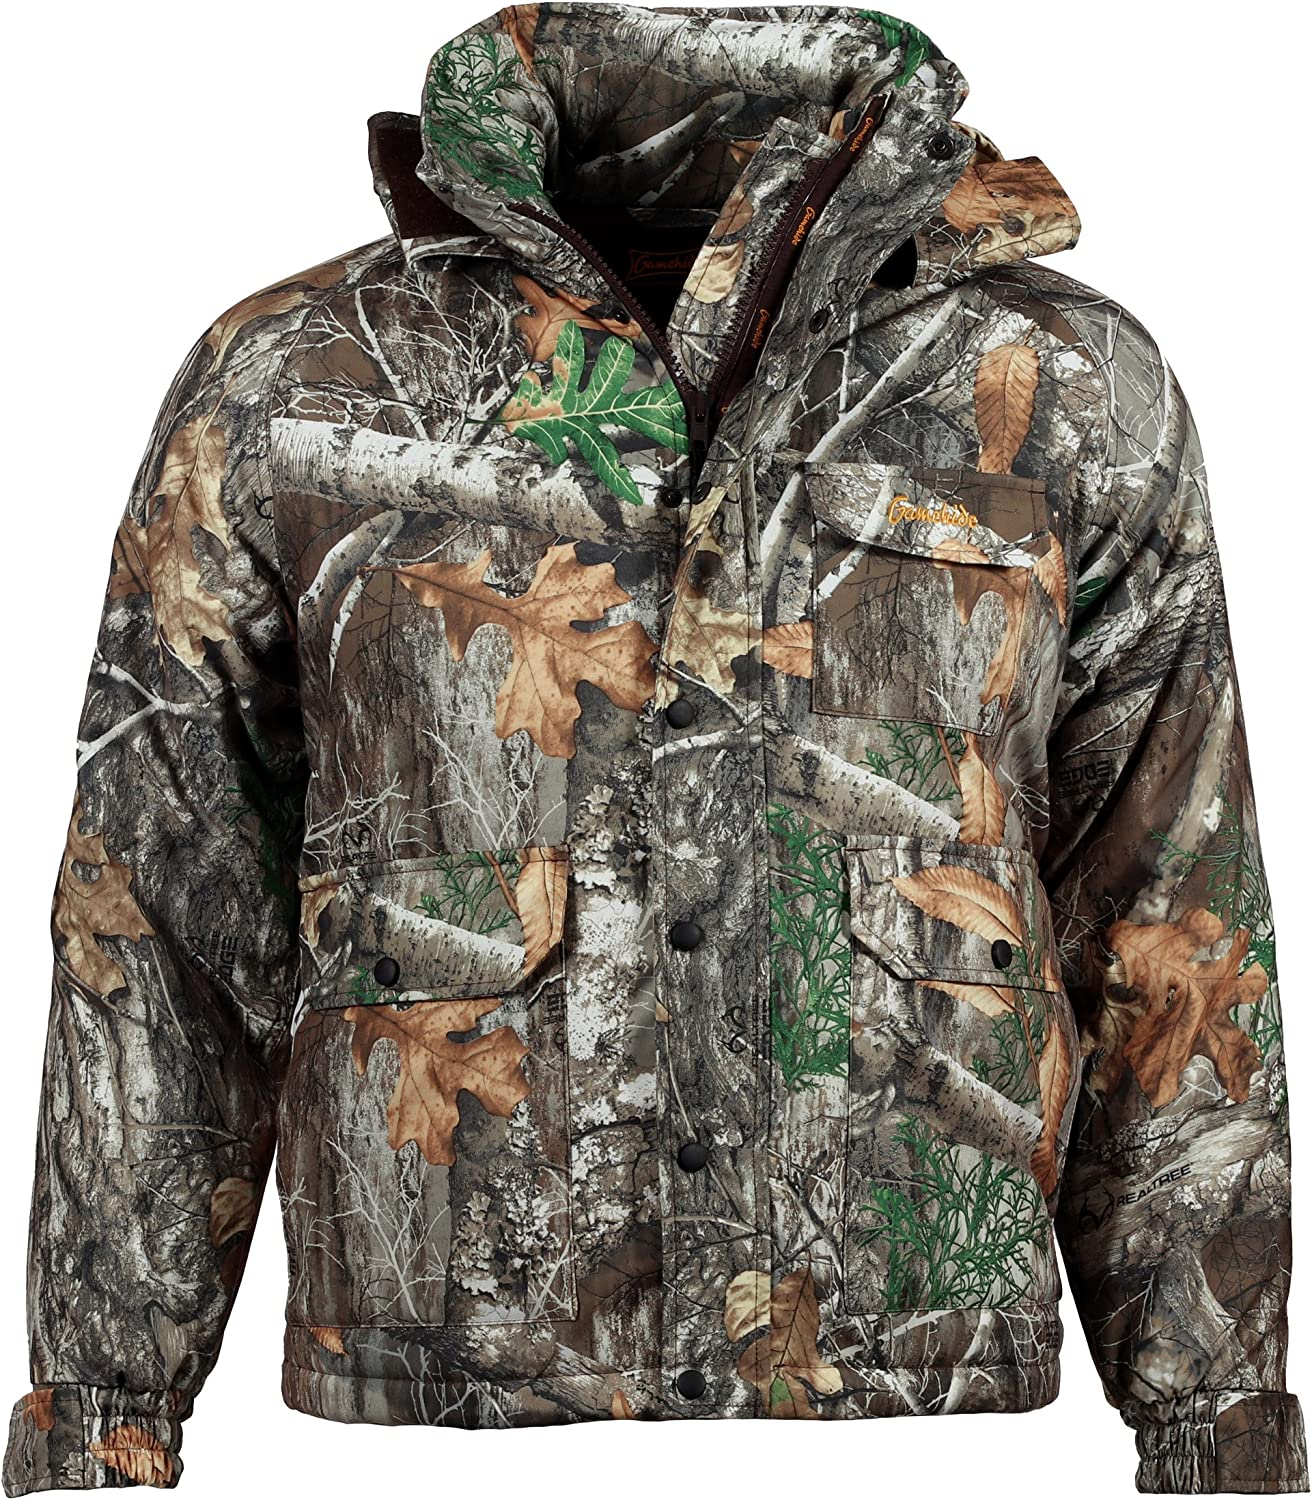 ZDLilian Autumn and Winter Camouflage Jacket Mens Sports and Leisure Outdoor Tourism Hiking Jacket